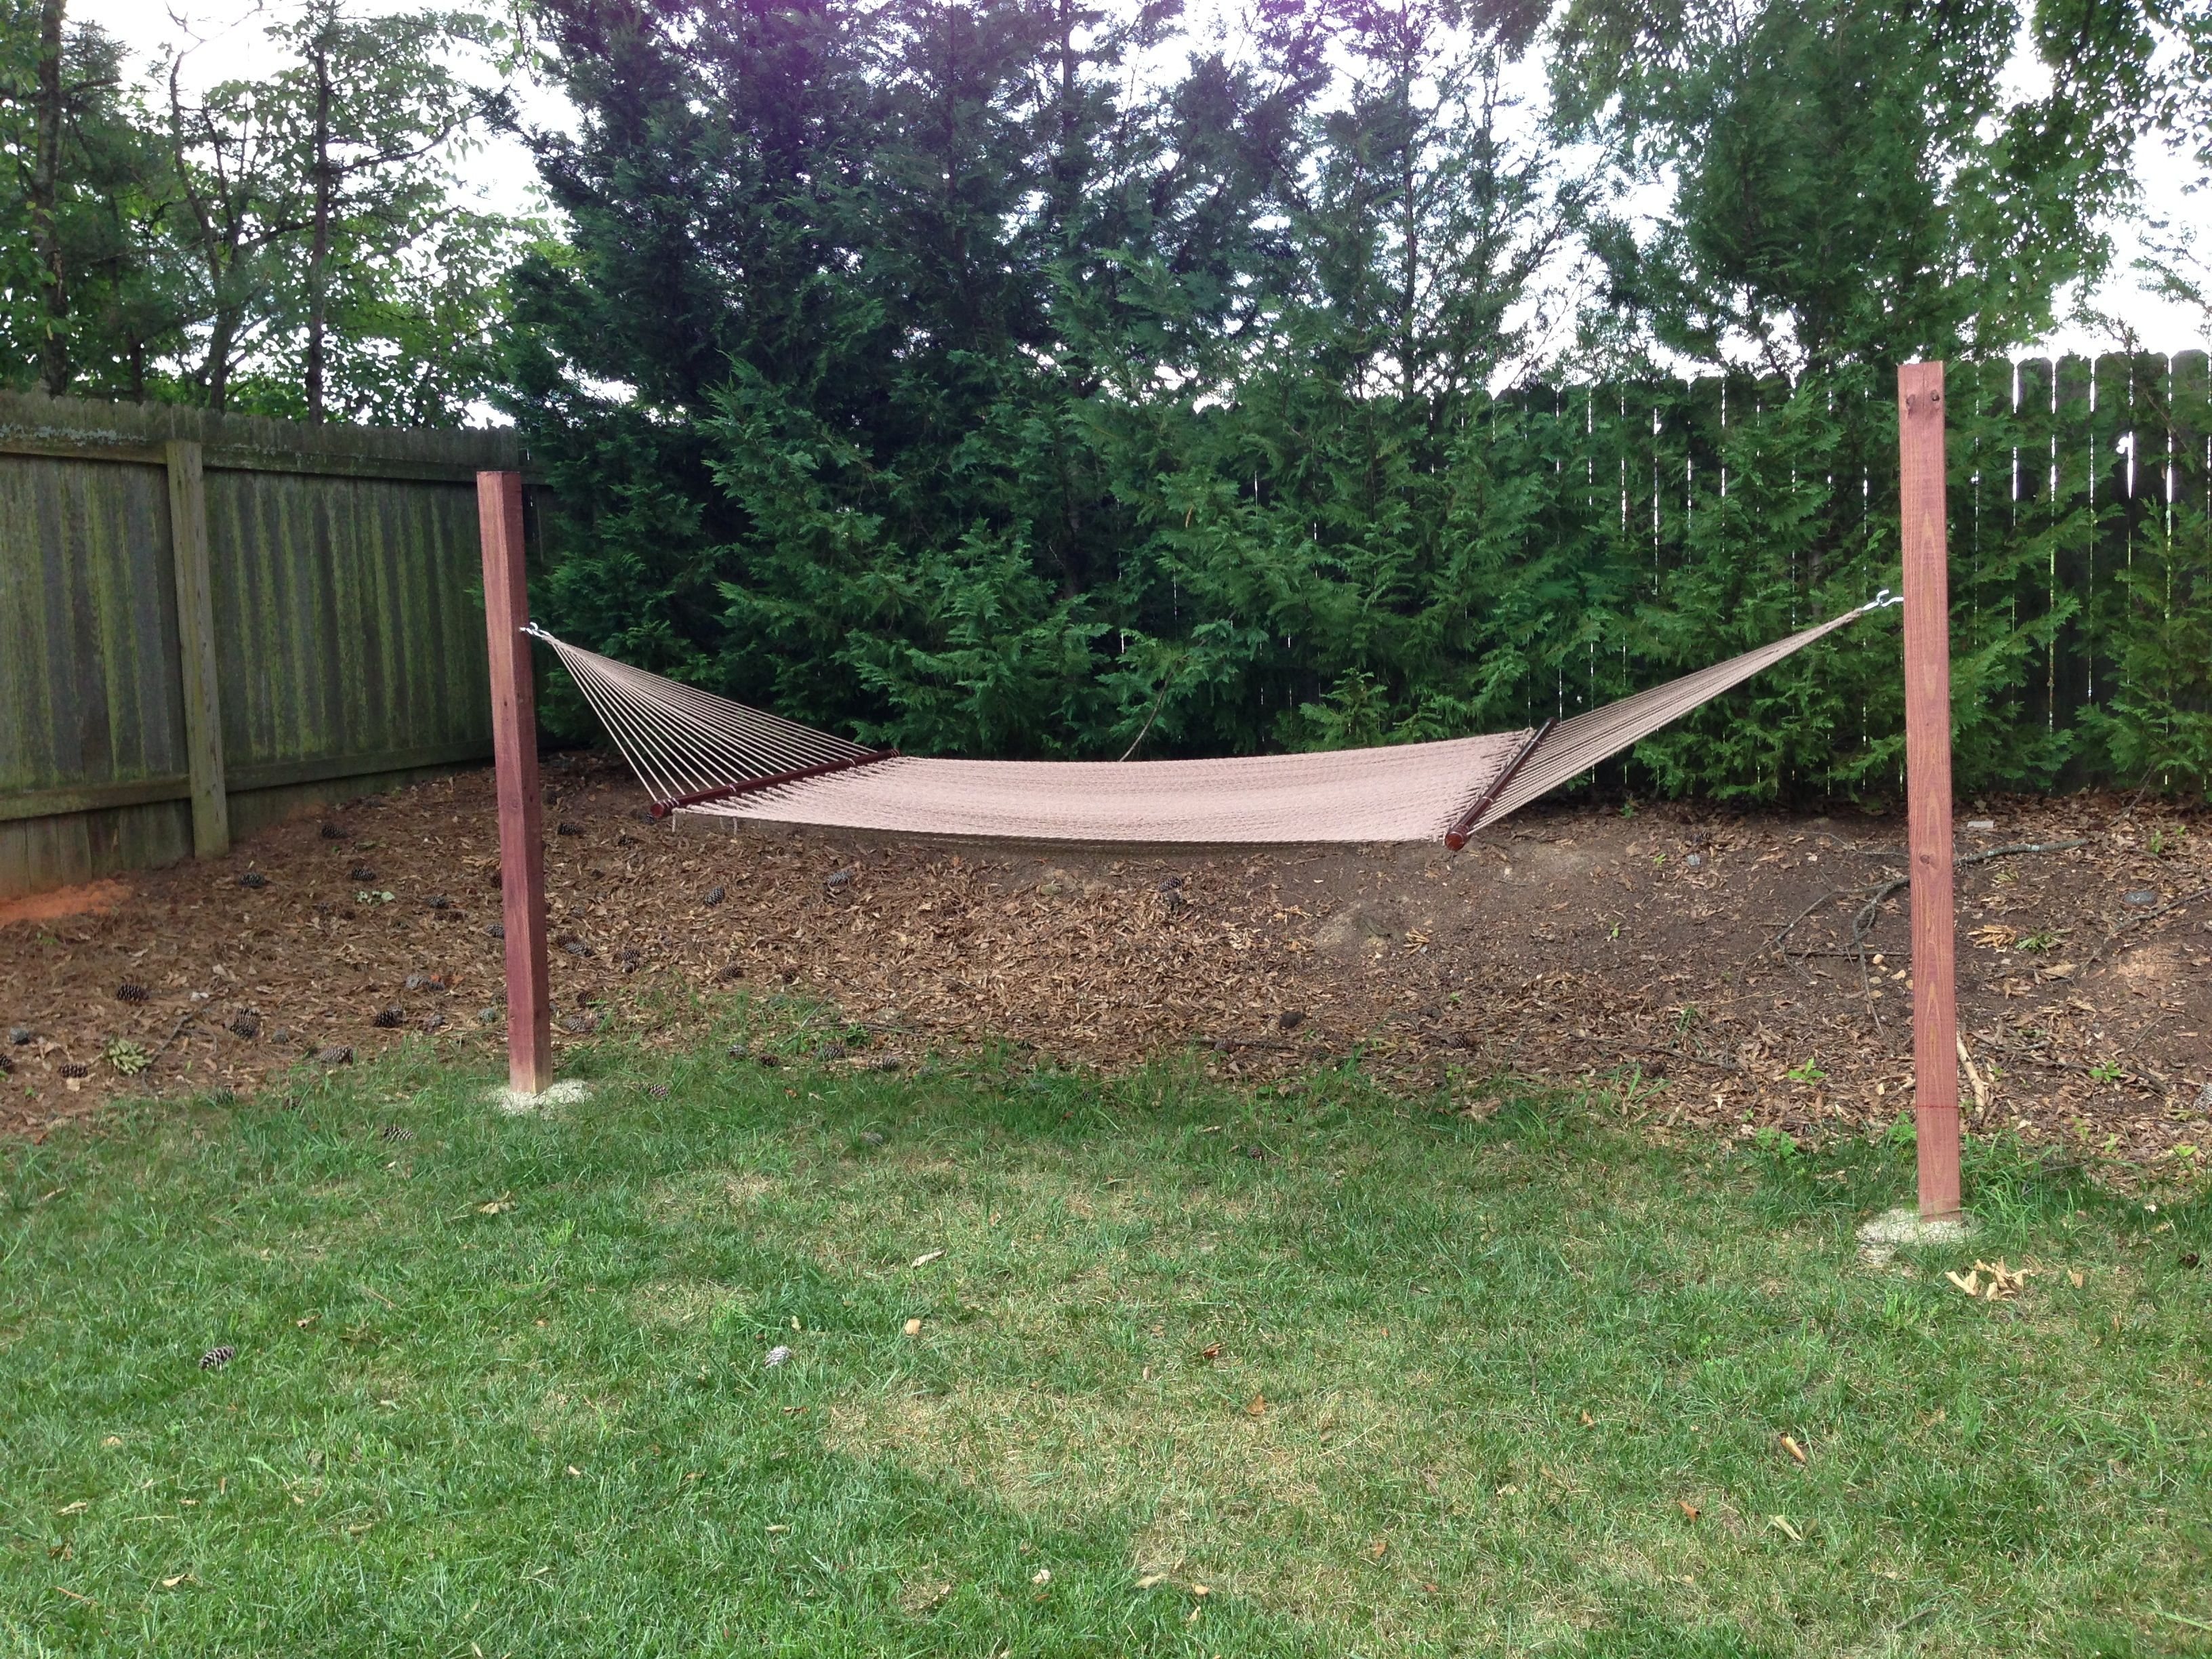 I Dont Have Trees For A Hammock And Didnt Want Metal